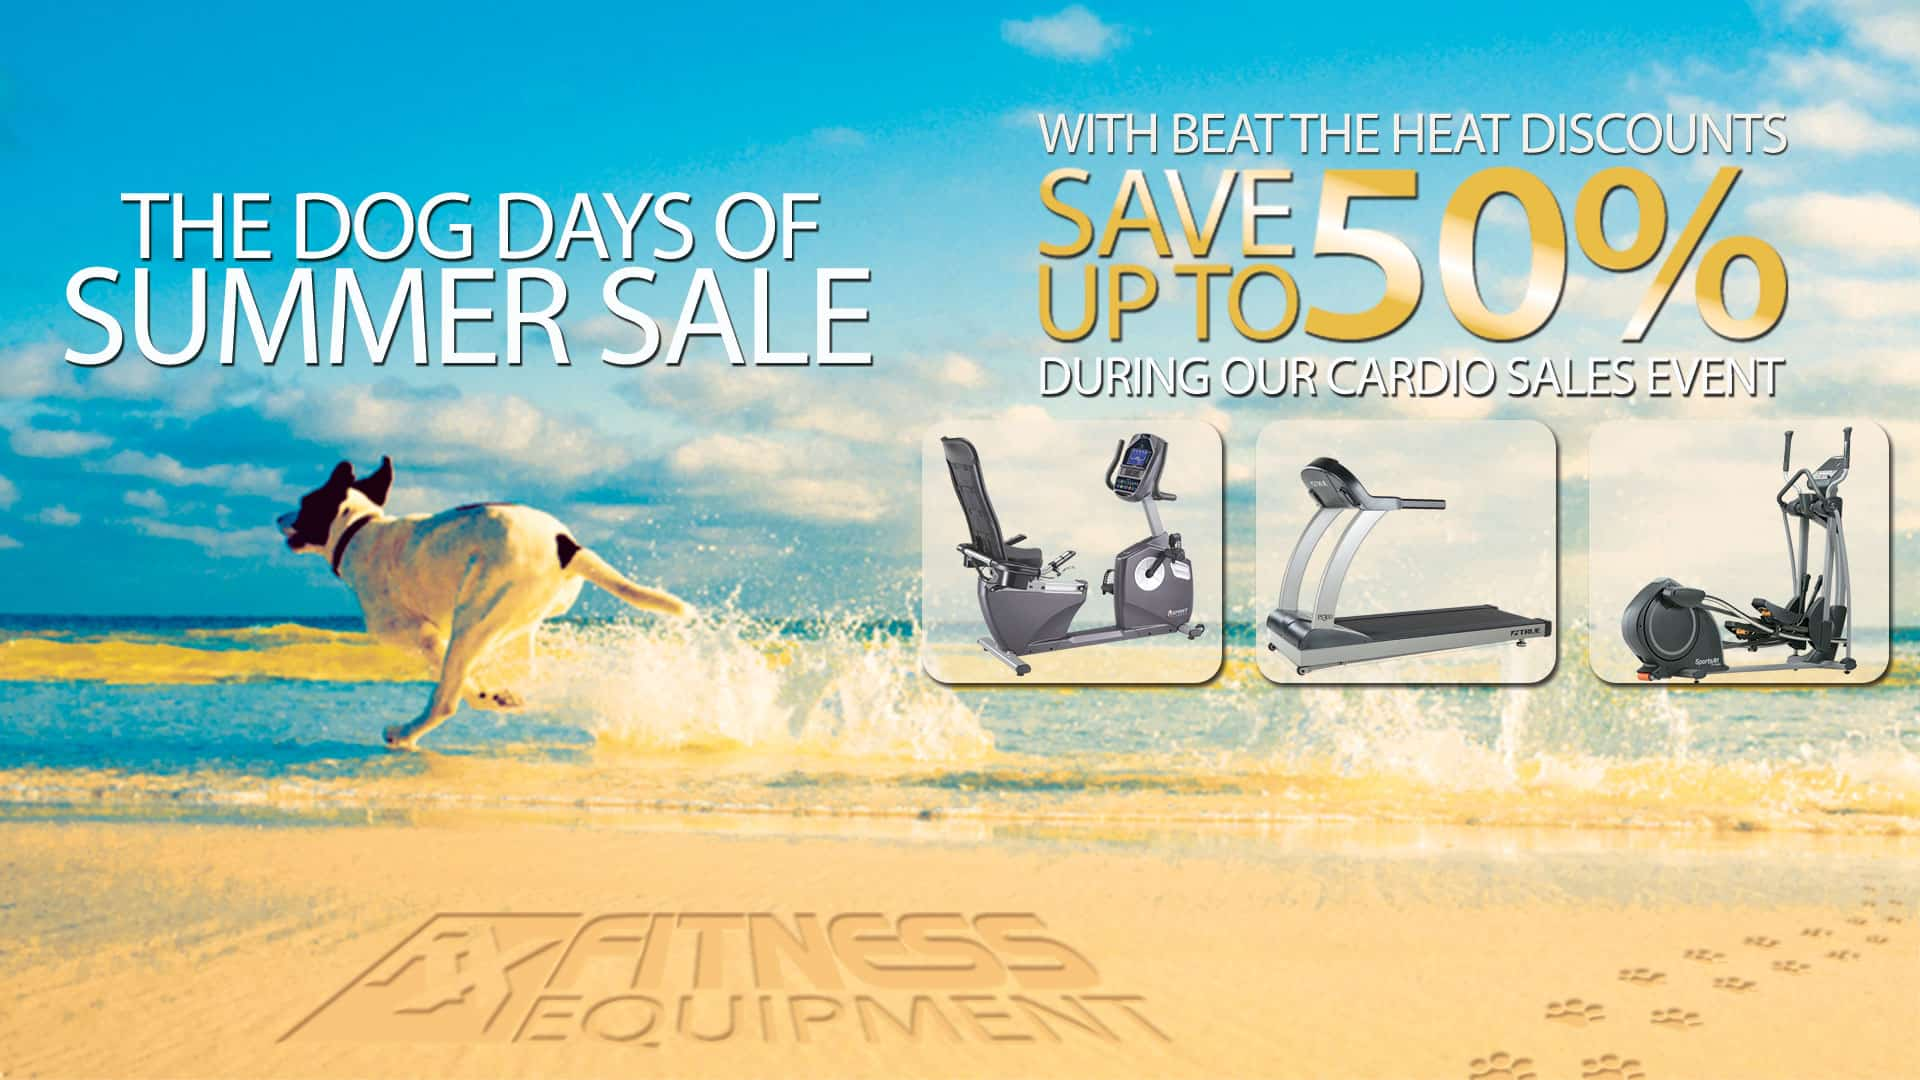 A The Dog Days of Summer Sale